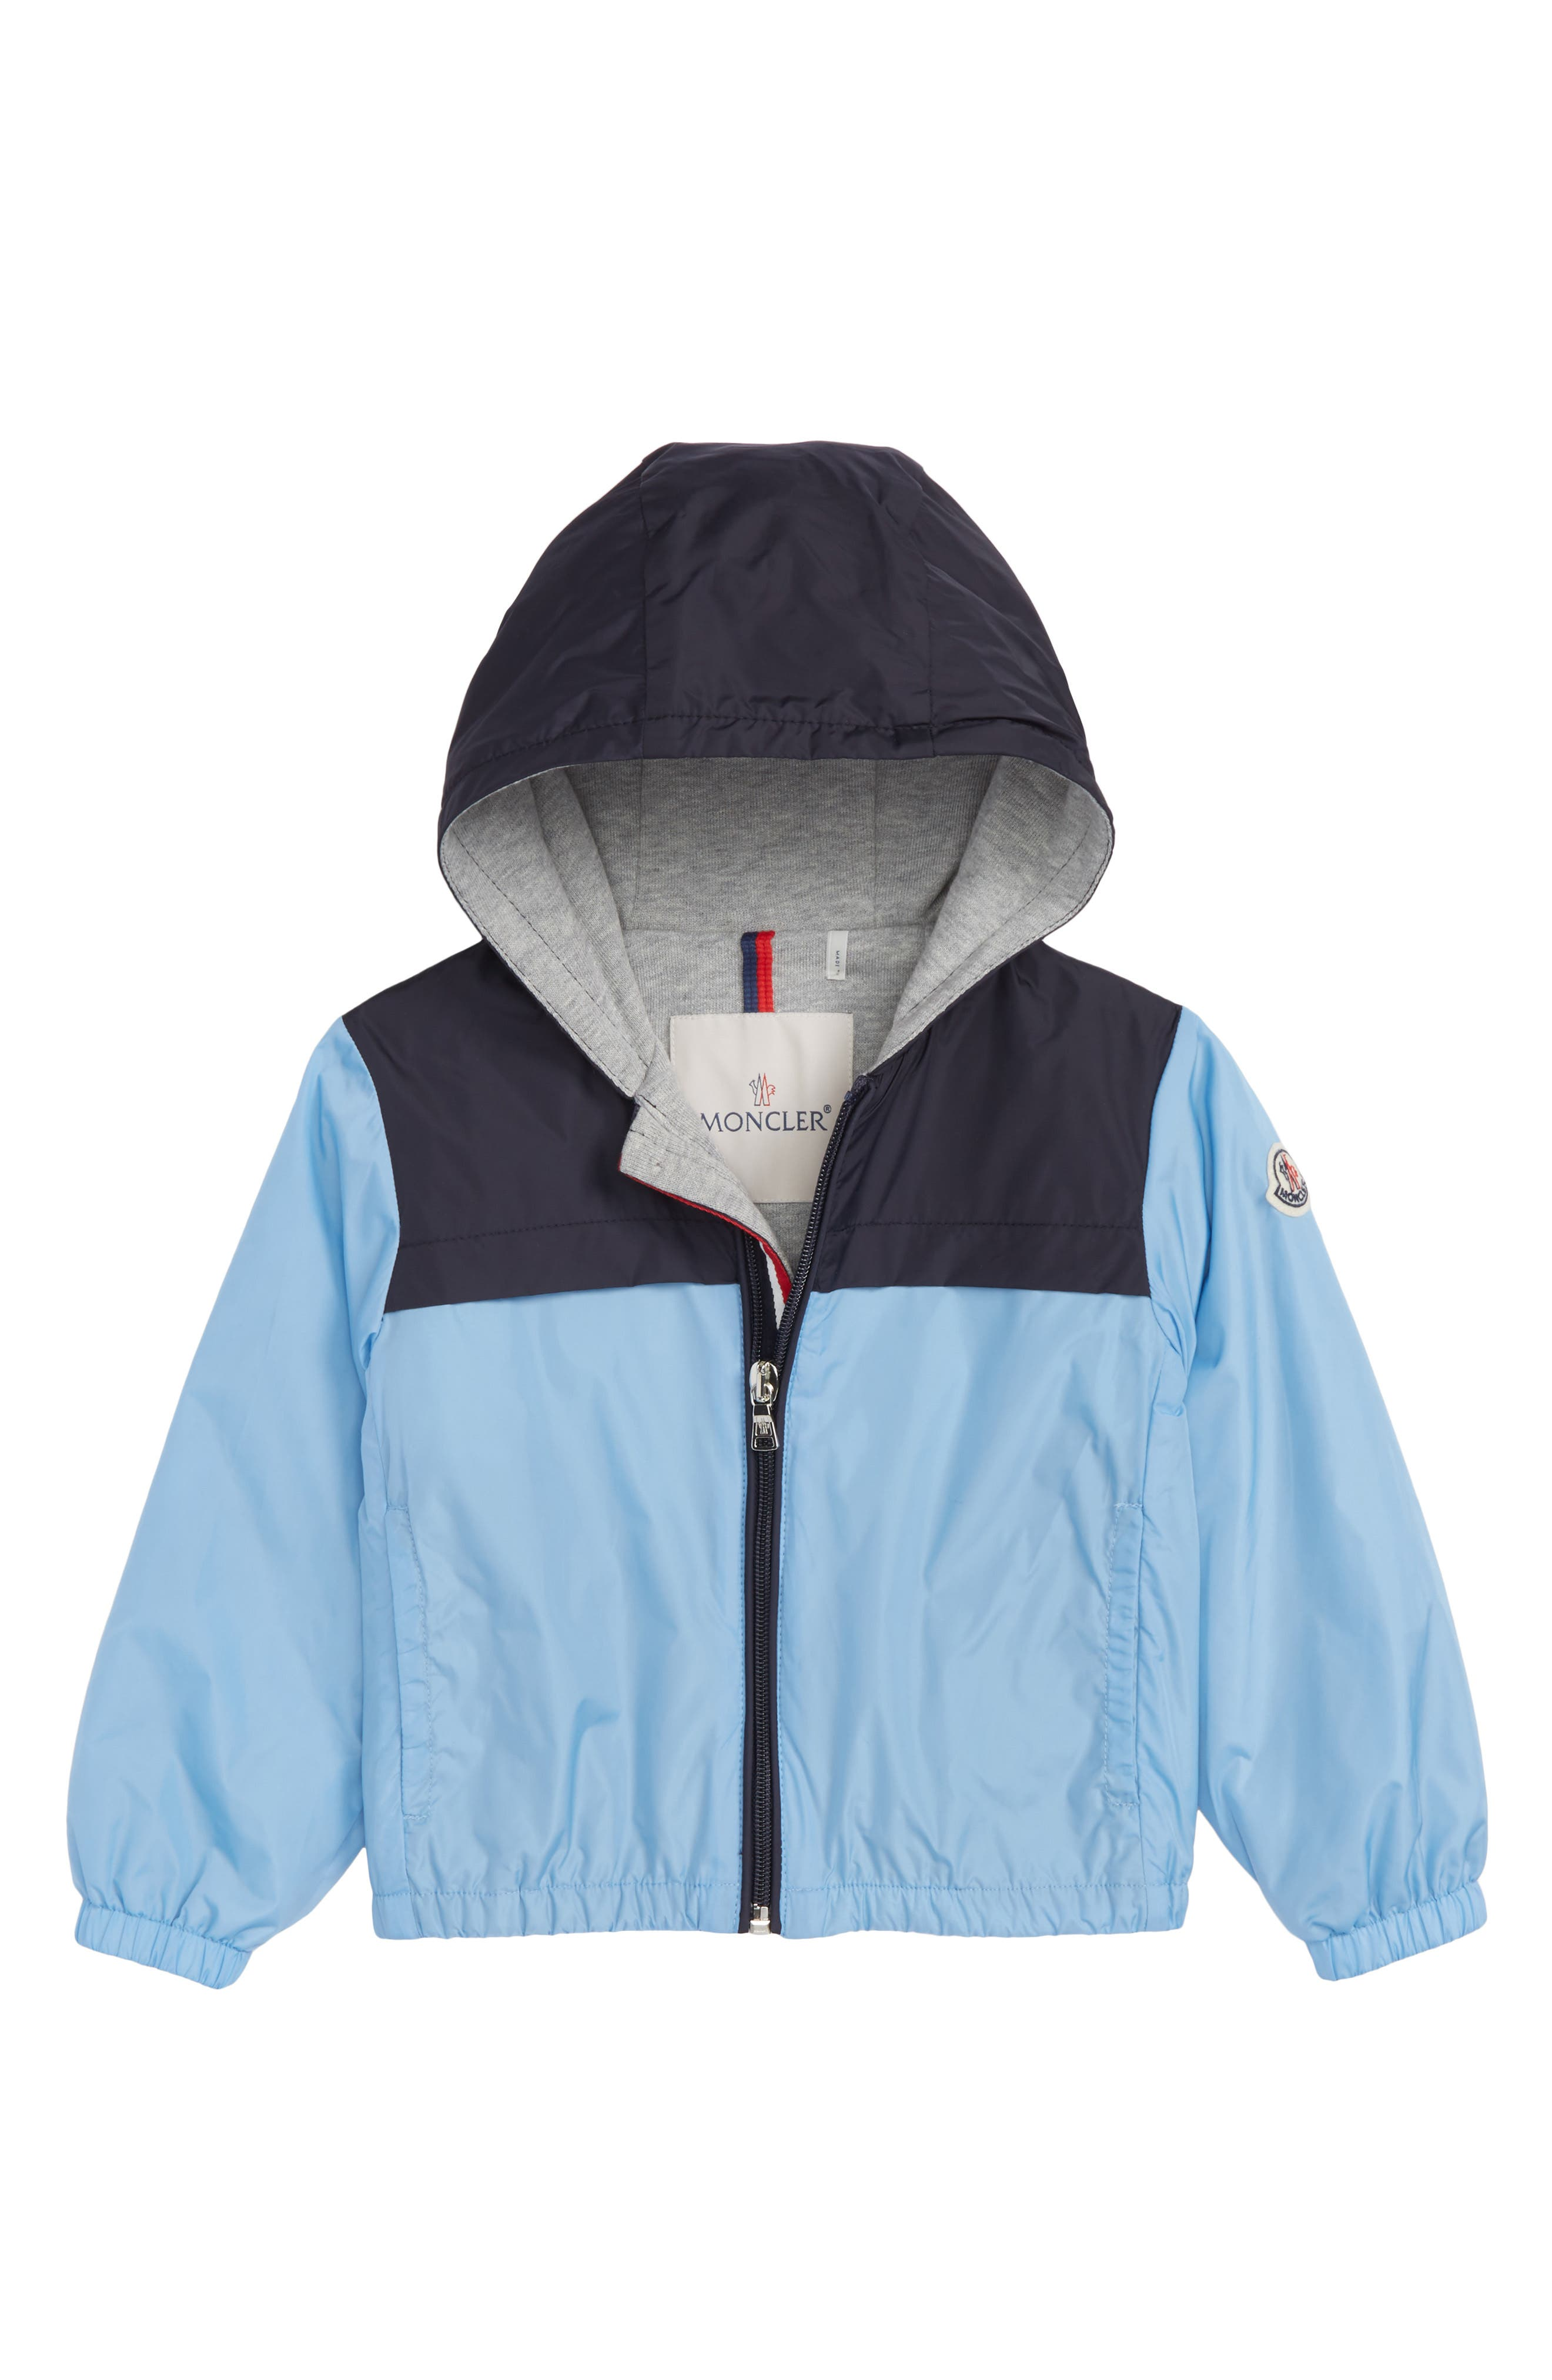 Izon Jersey Lined Hoodie,                             Main thumbnail 1, color,                             BLUE/ NAVY